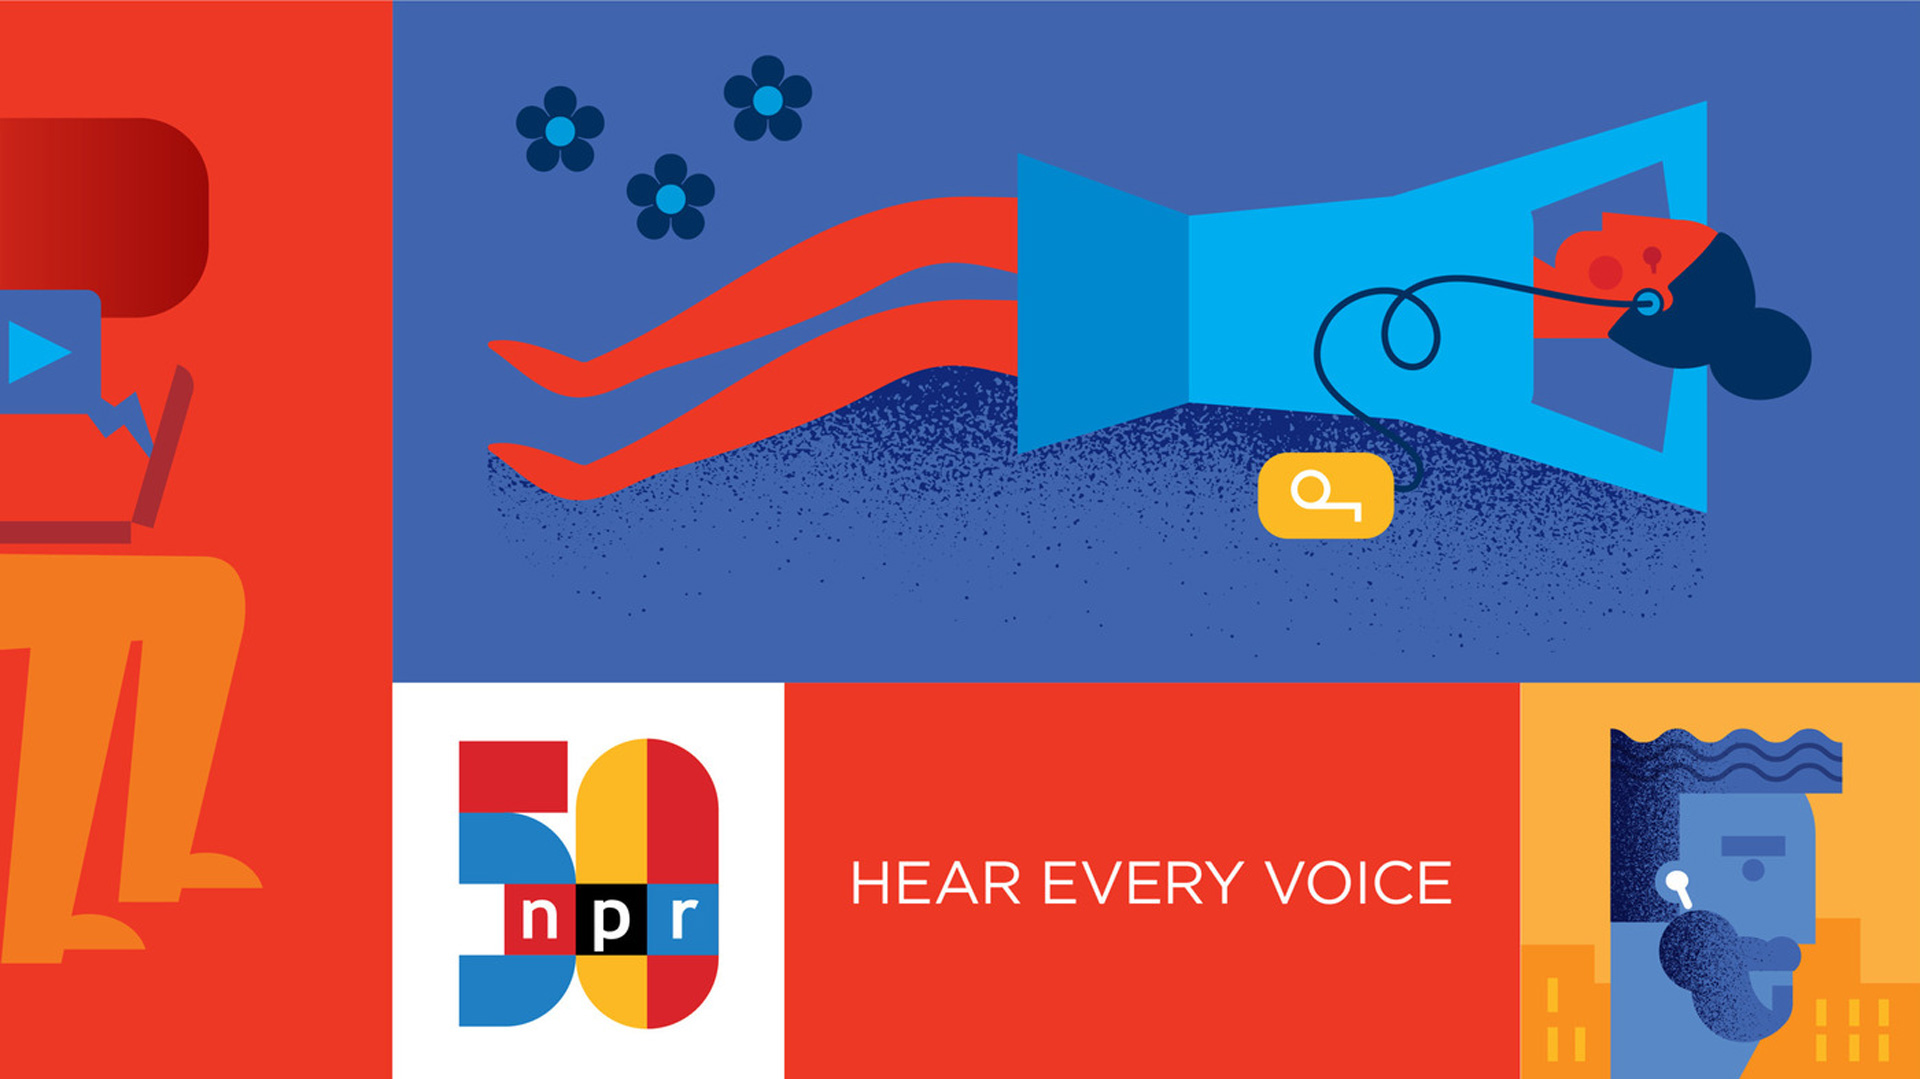 May 3, 2021, marks NPR's 50th anniversary of on-air original programming. NPR debuted with around 88 Member stations, 55 employees, and fewer than 2 million listeners. Now, more than 60 million people access NPR content for free on multiple platforms each week.